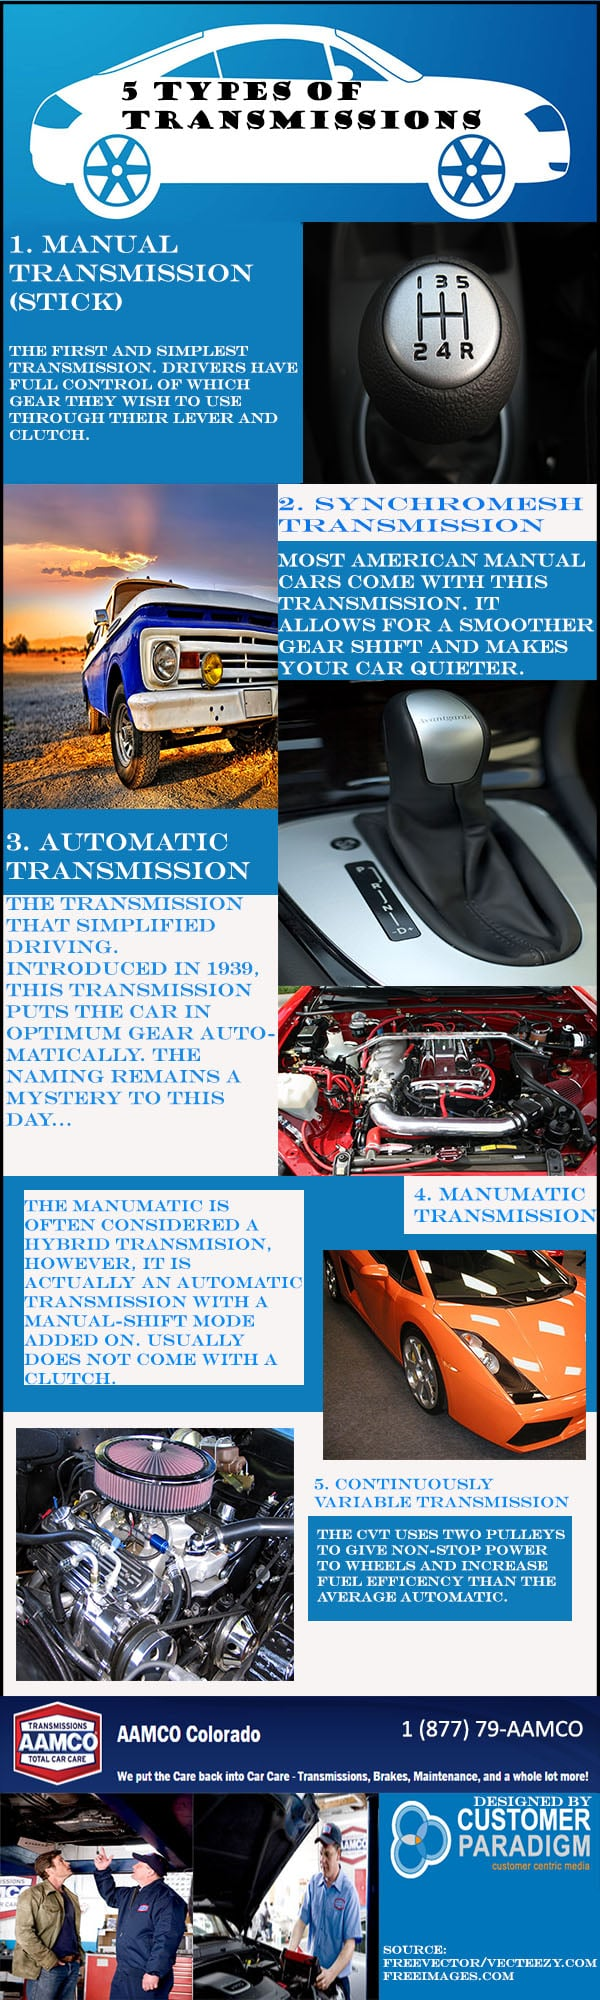 5 Types Of Transmissions